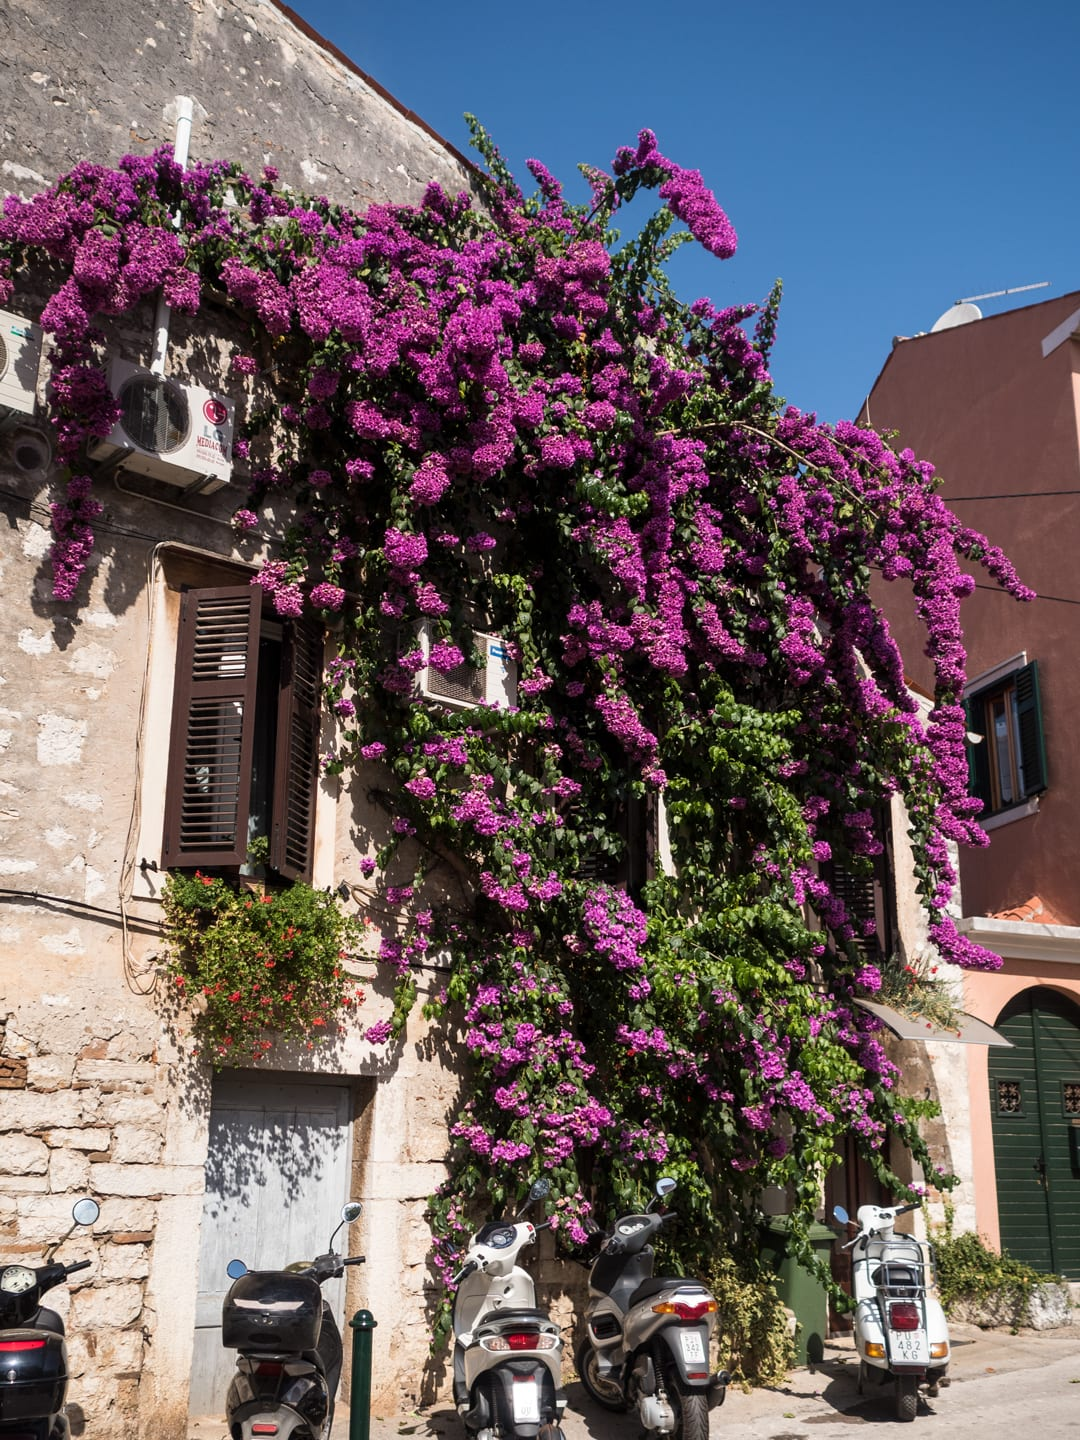 Bougainvillea covered wall - Rovinj, Croatia